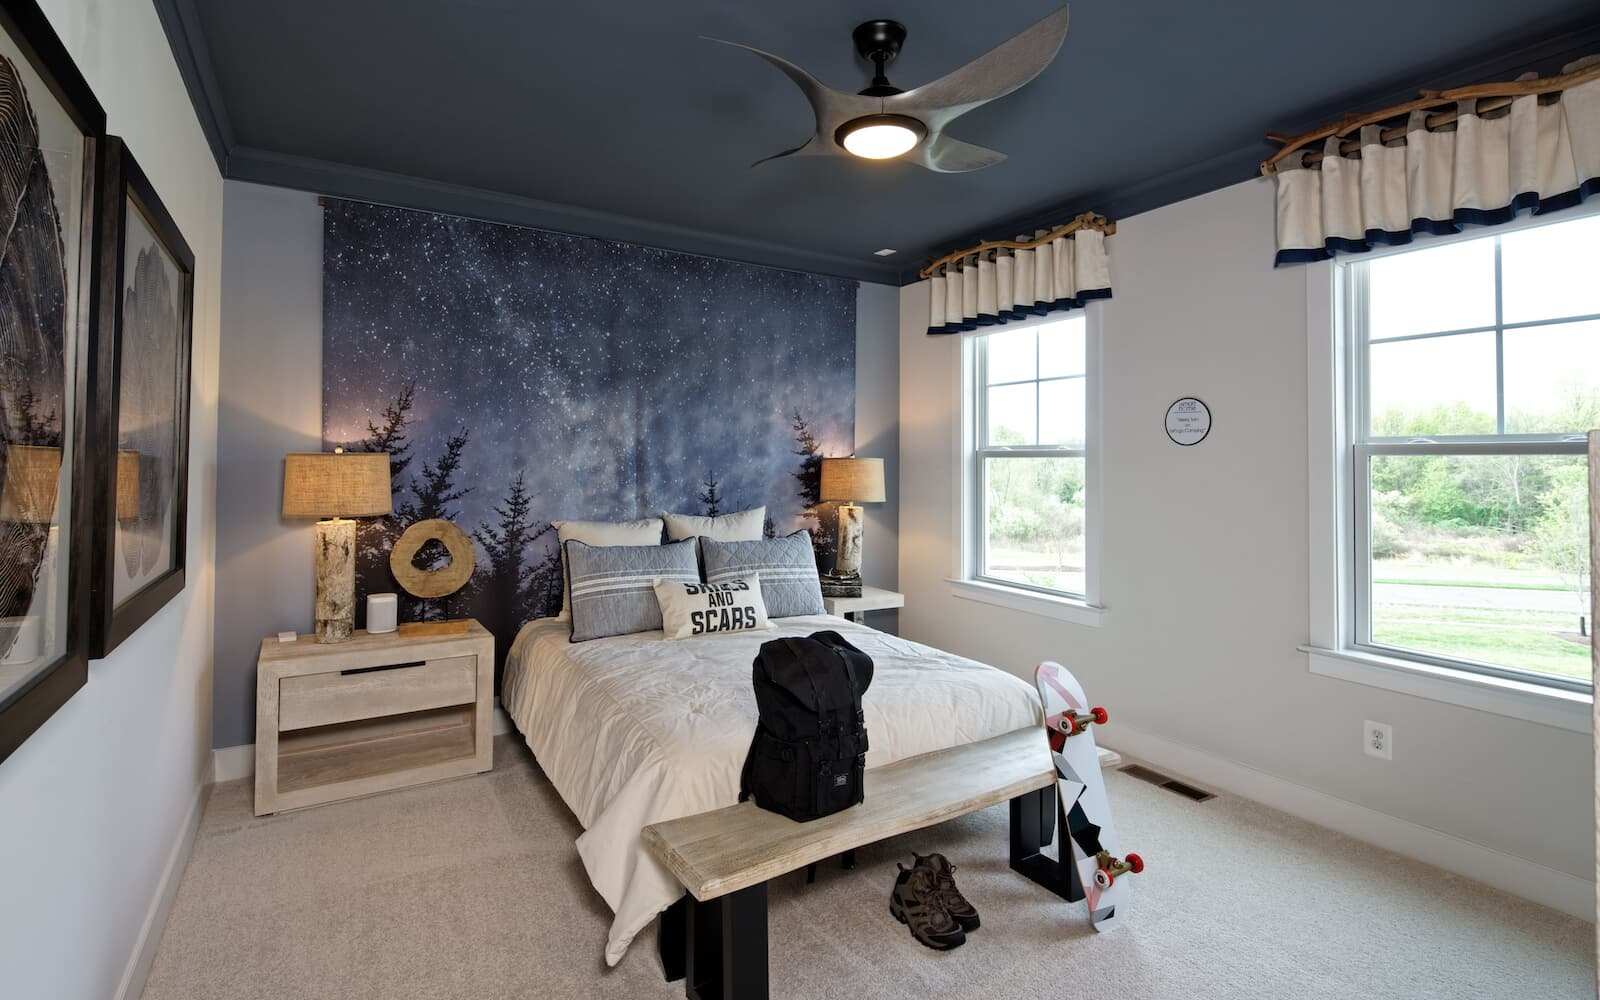 Cresswell-bedroom2-single-family-homes-leesburg-va-waterford-manor-brookfield-residential